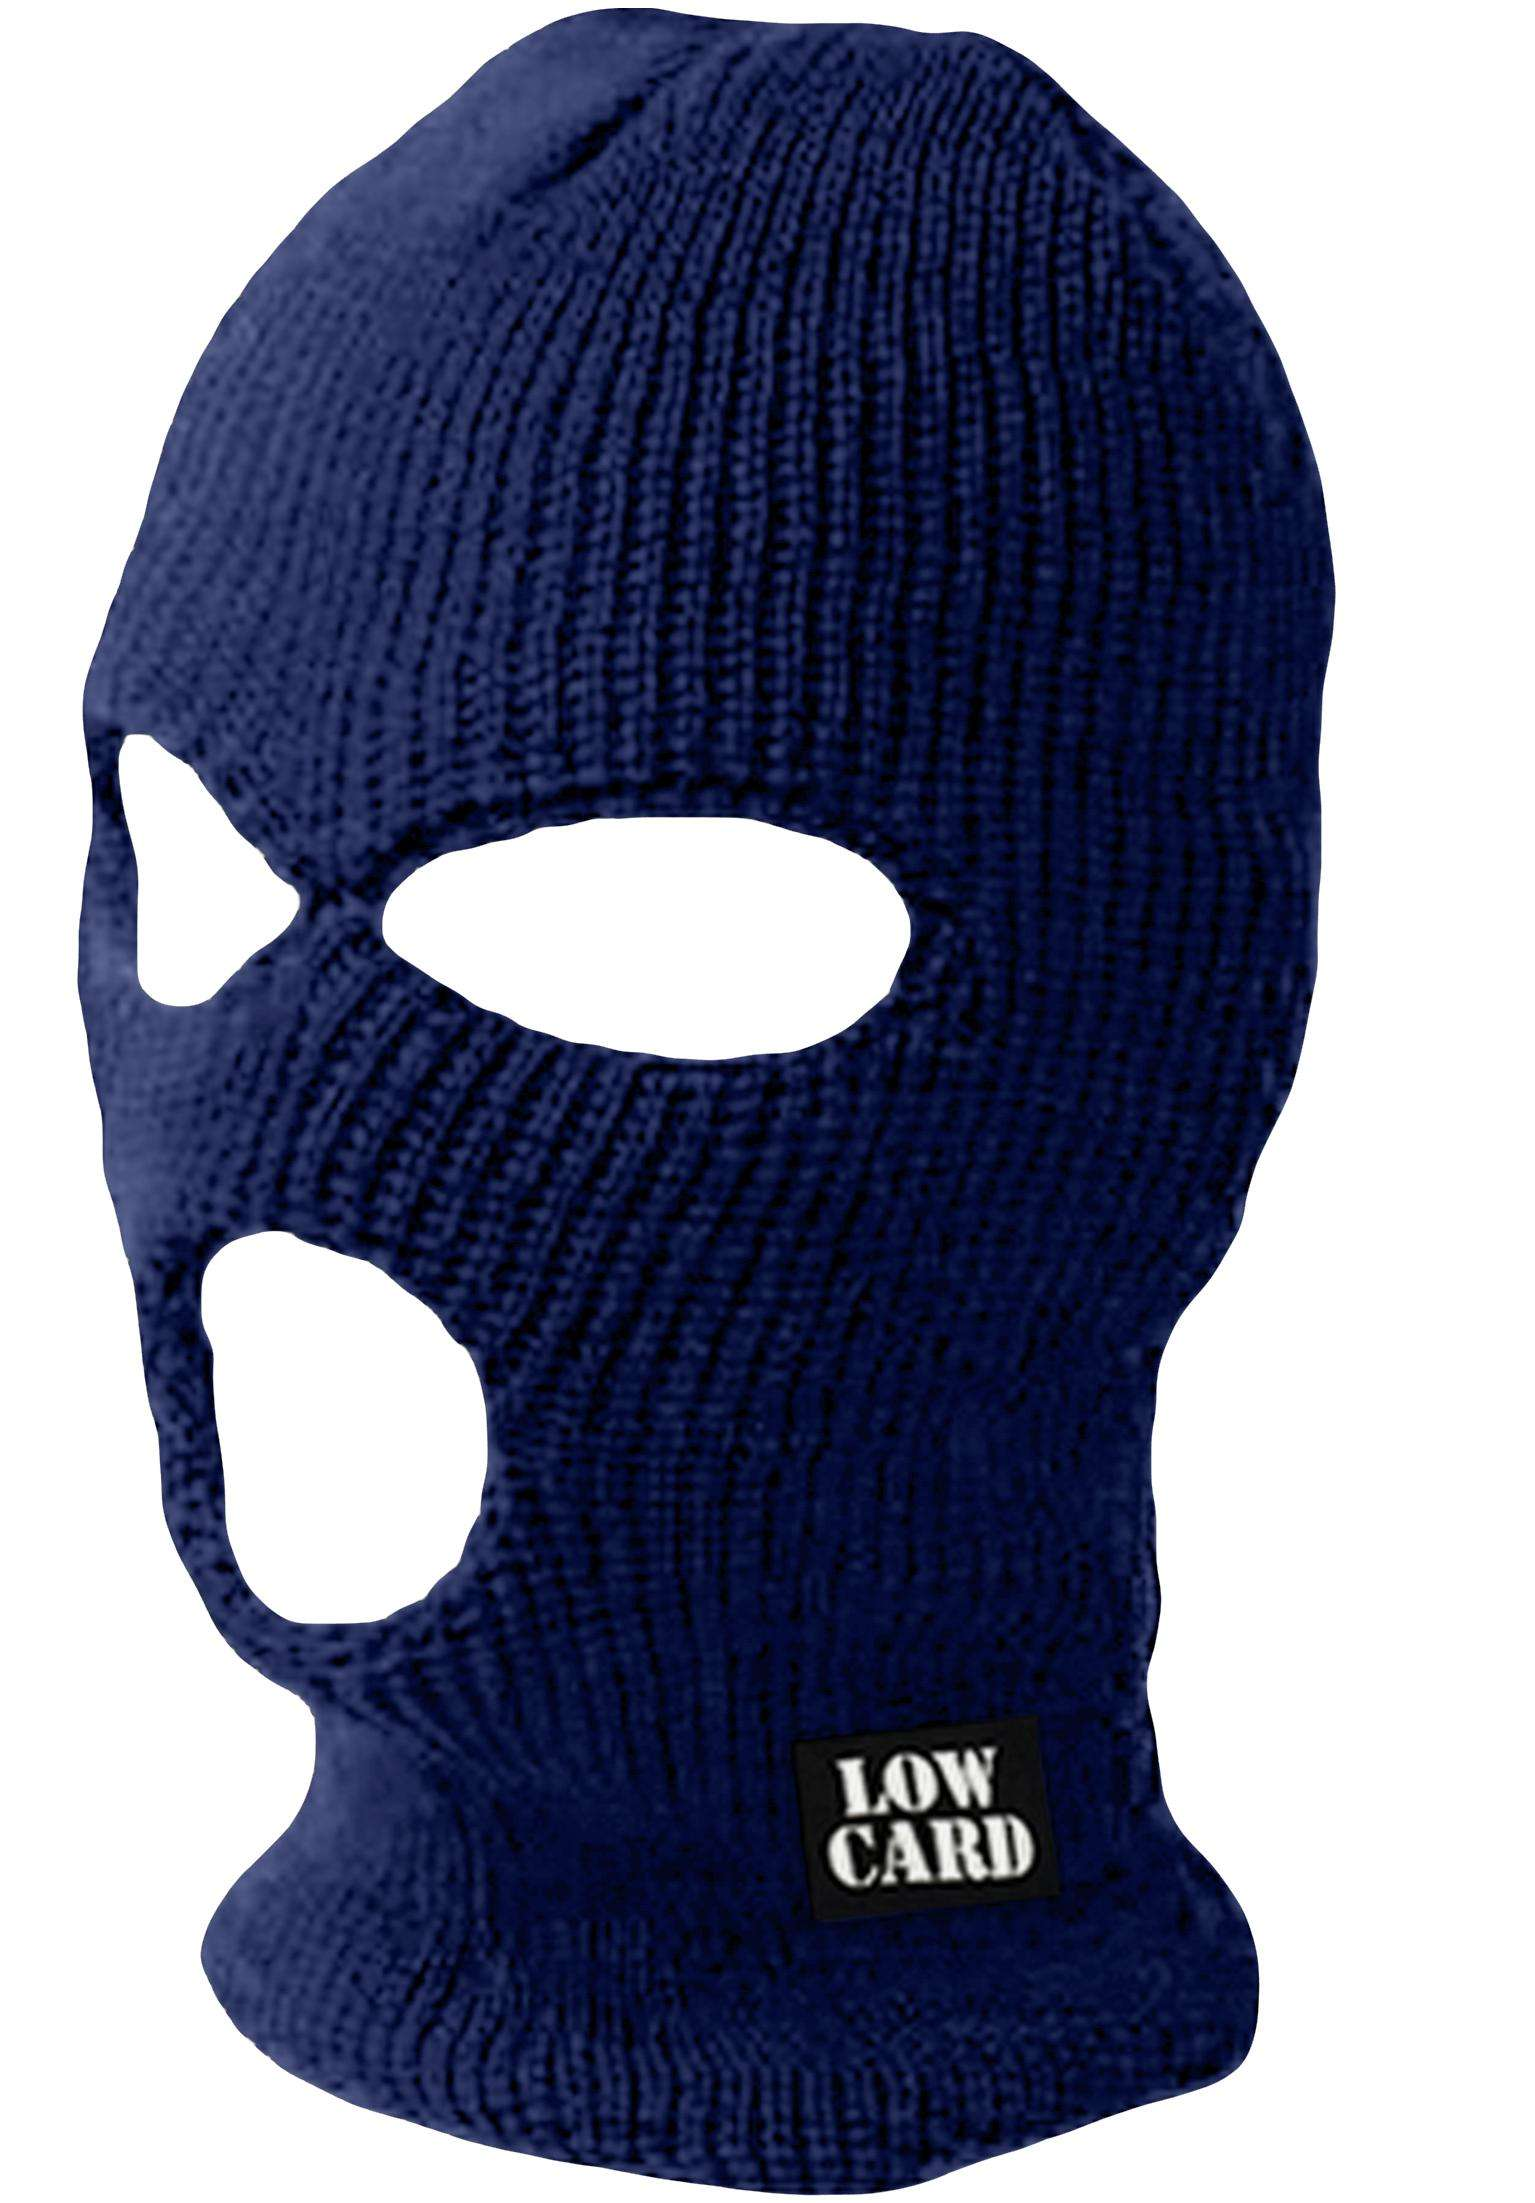 0660d1b7ce229 Negotiator Face Mask Lowcard Beanies in navy for Men